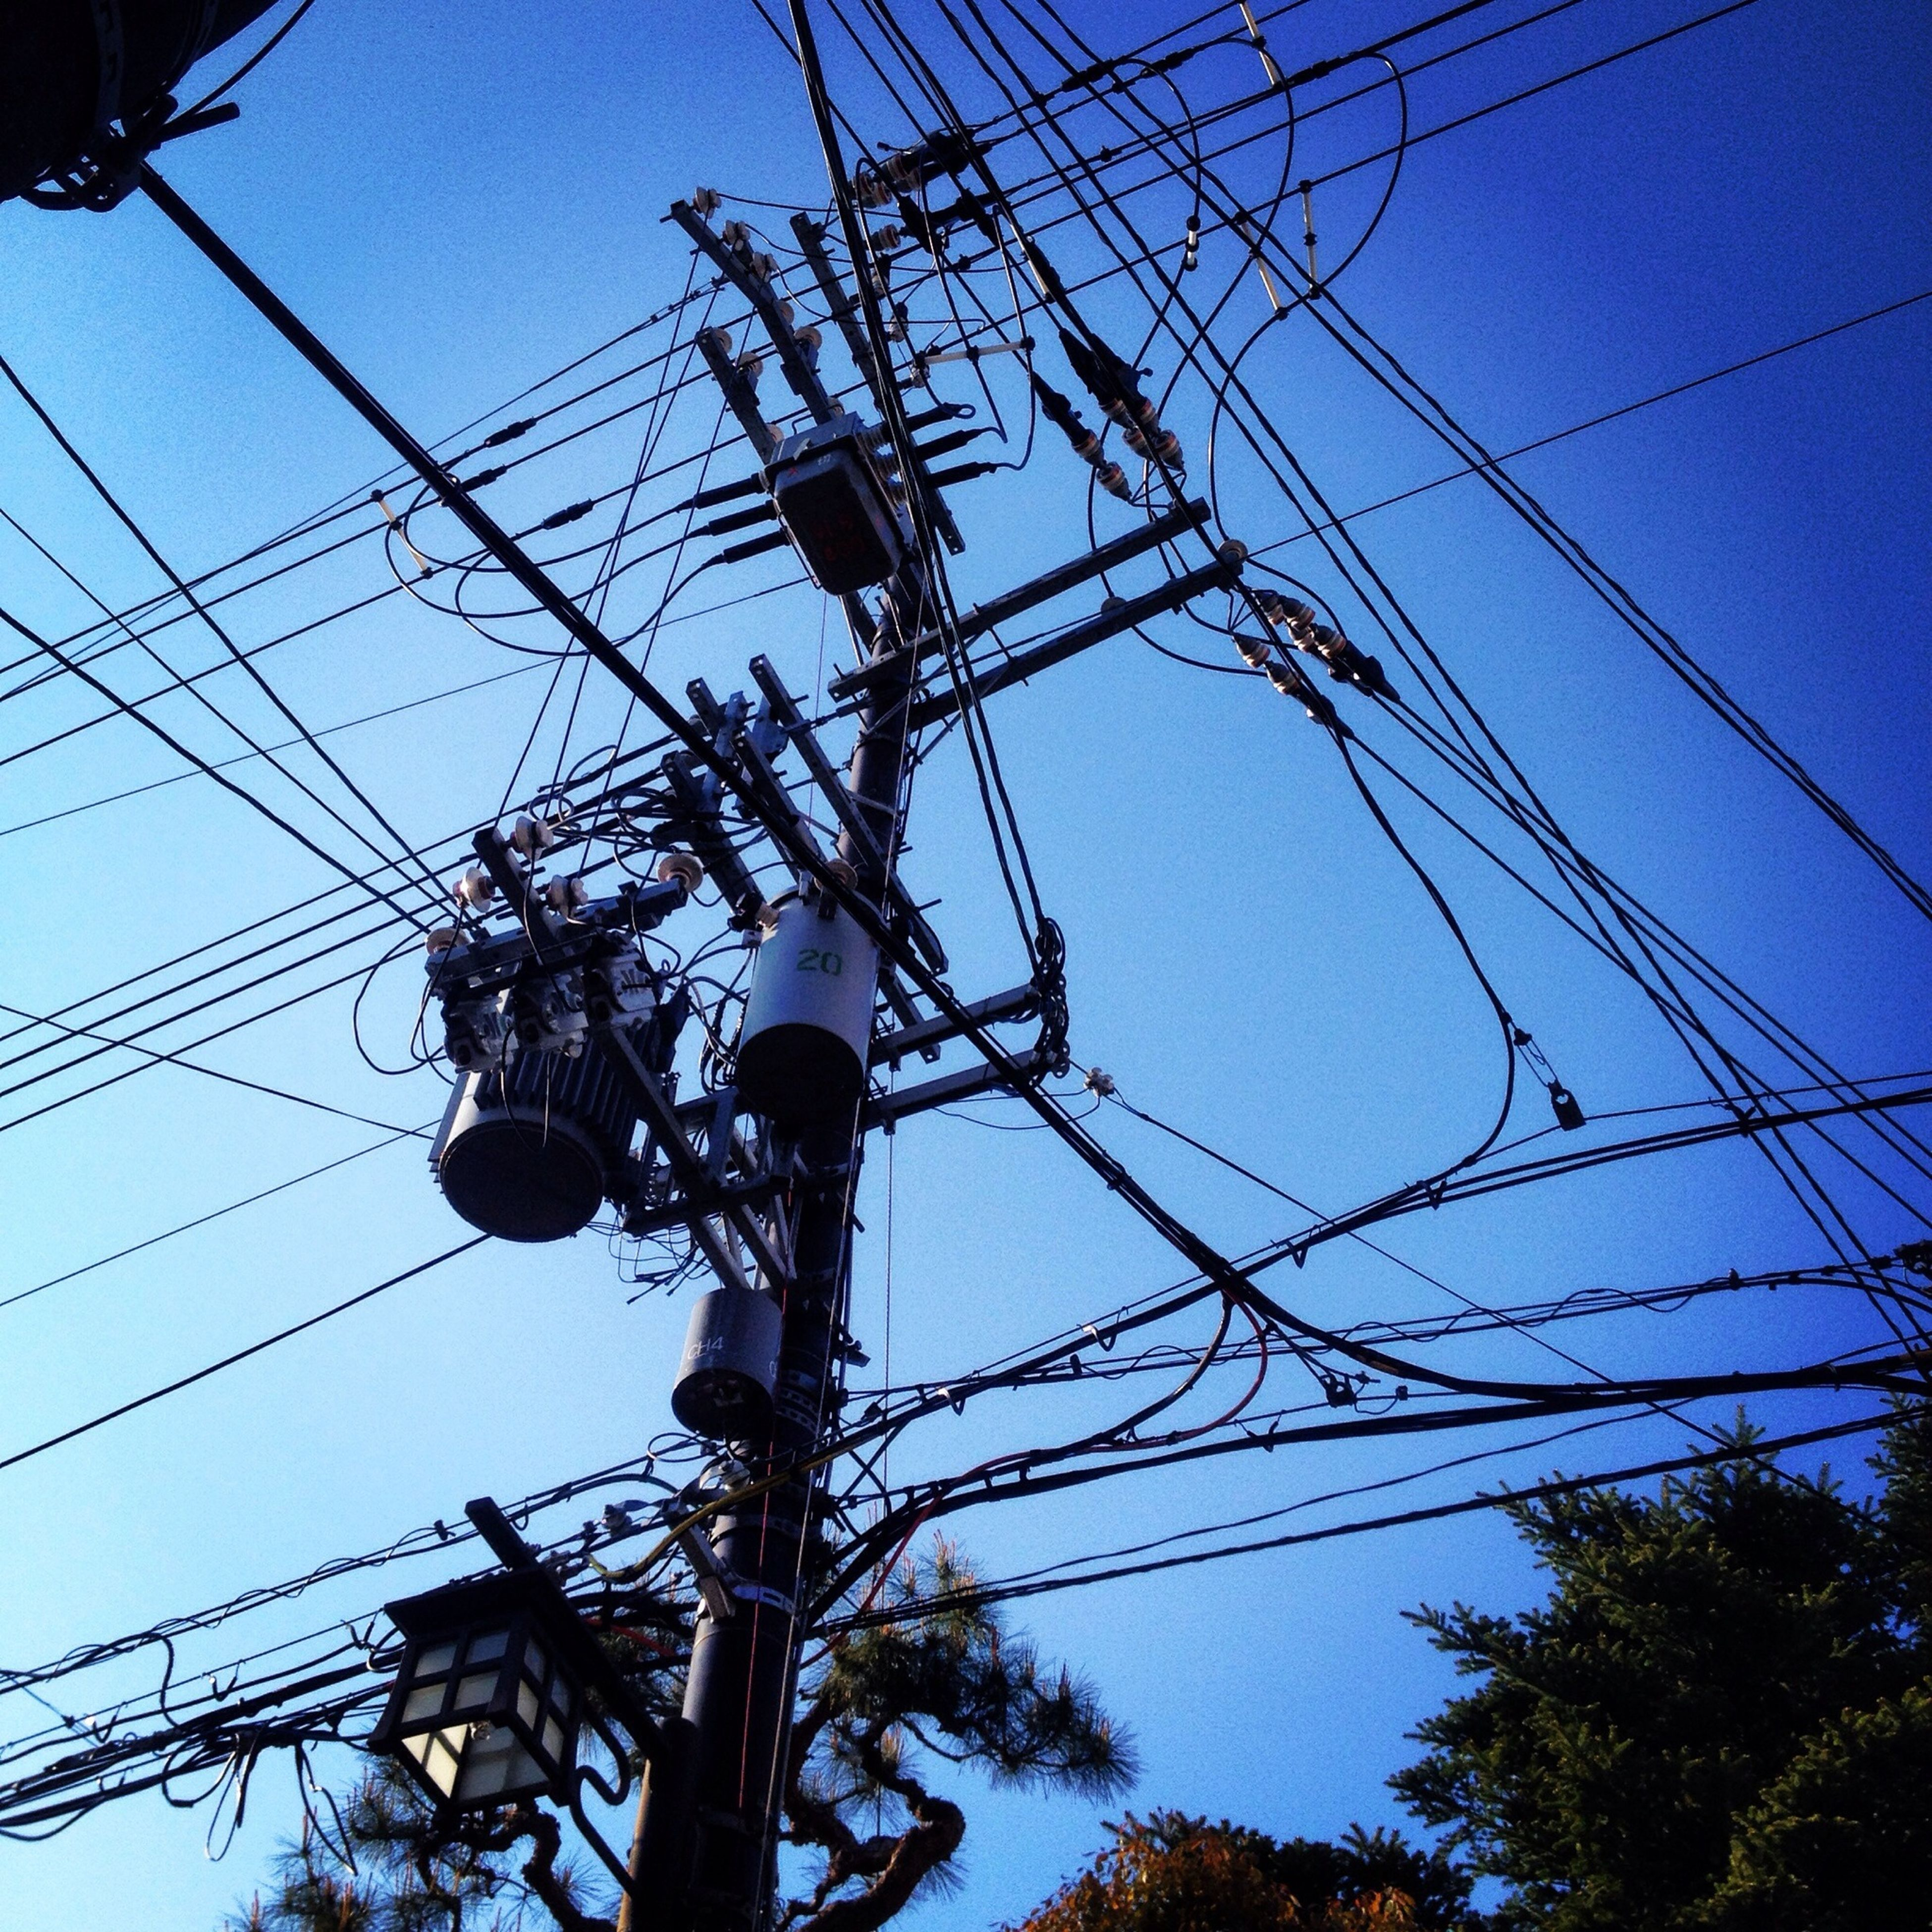 power line, low angle view, electricity, power supply, electricity pylon, cable, technology, connection, fuel and power generation, blue, clear sky, power cable, sky, complexity, lighting equipment, wire, silhouette, pole, outdoors, electricity tower